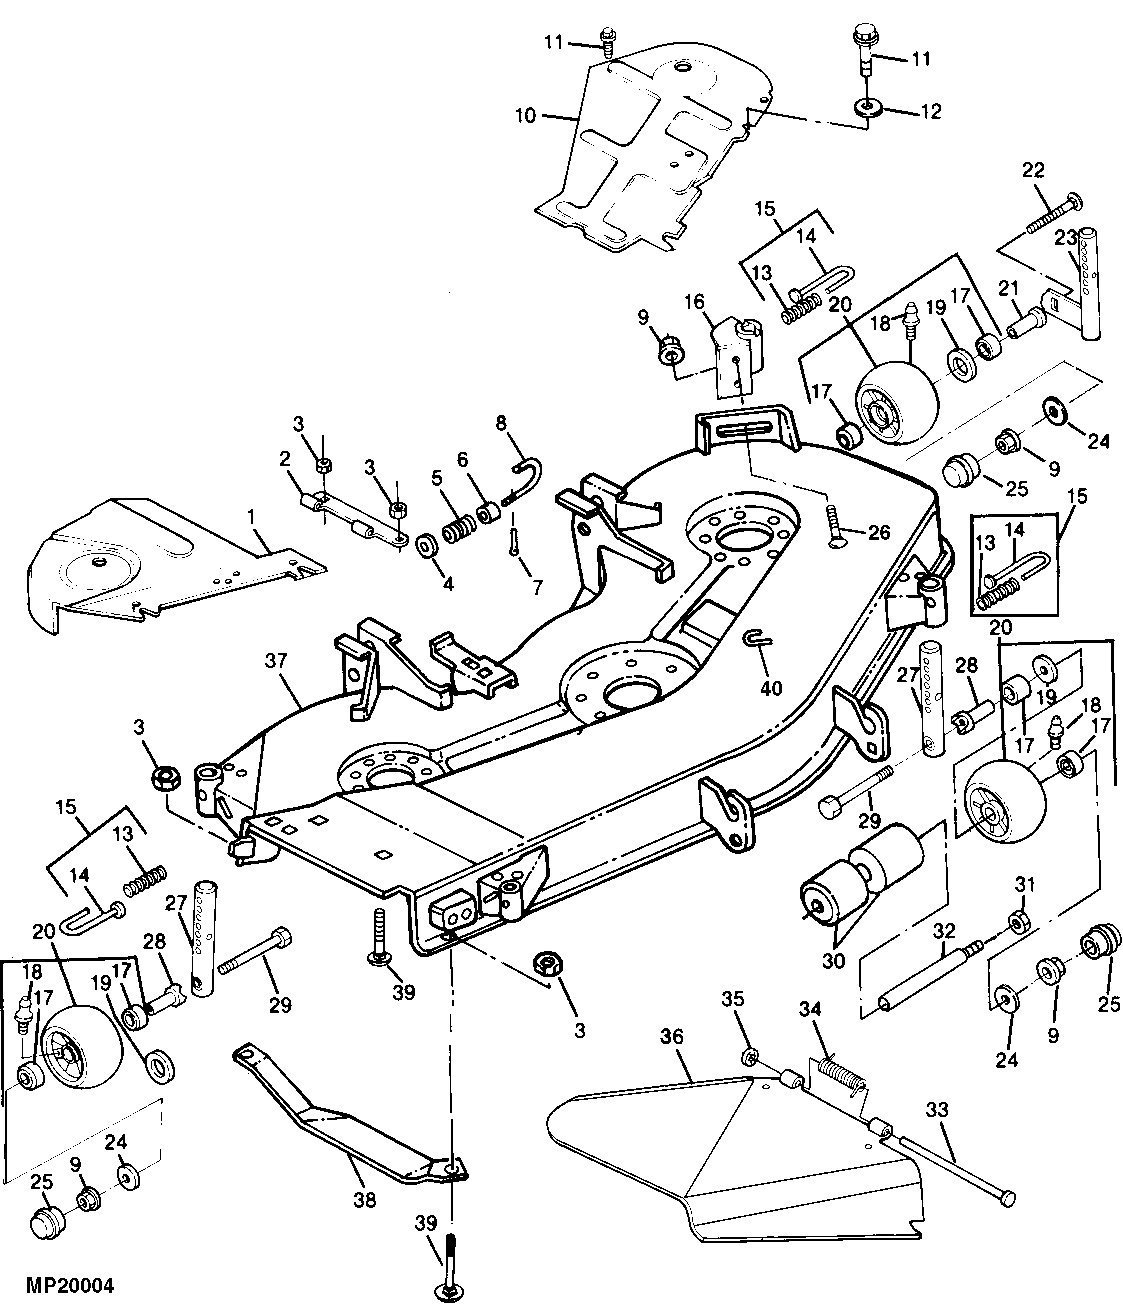 john deere z425 mower deck parts diagram